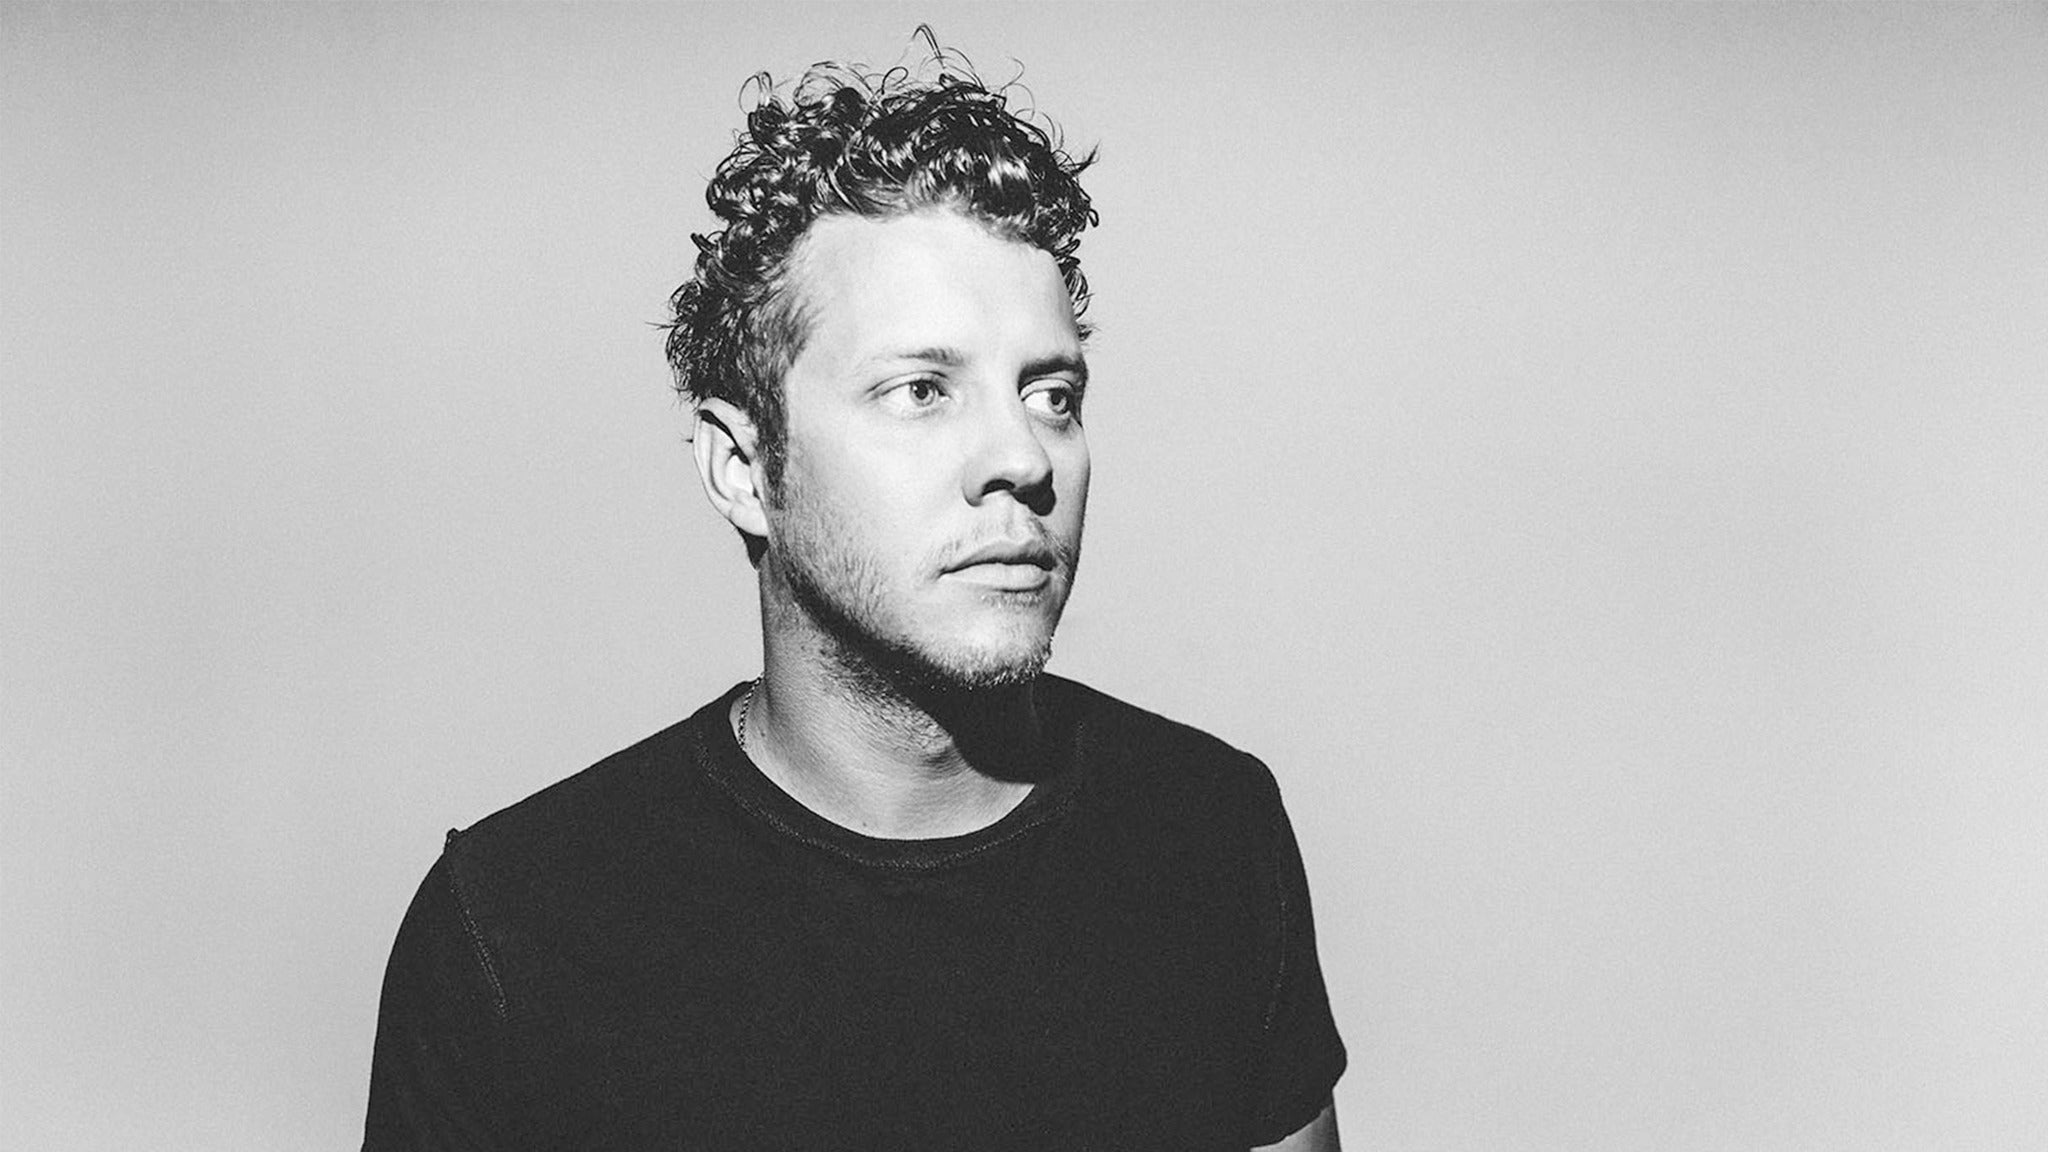 Anderson East at The Vogue at The Vogue